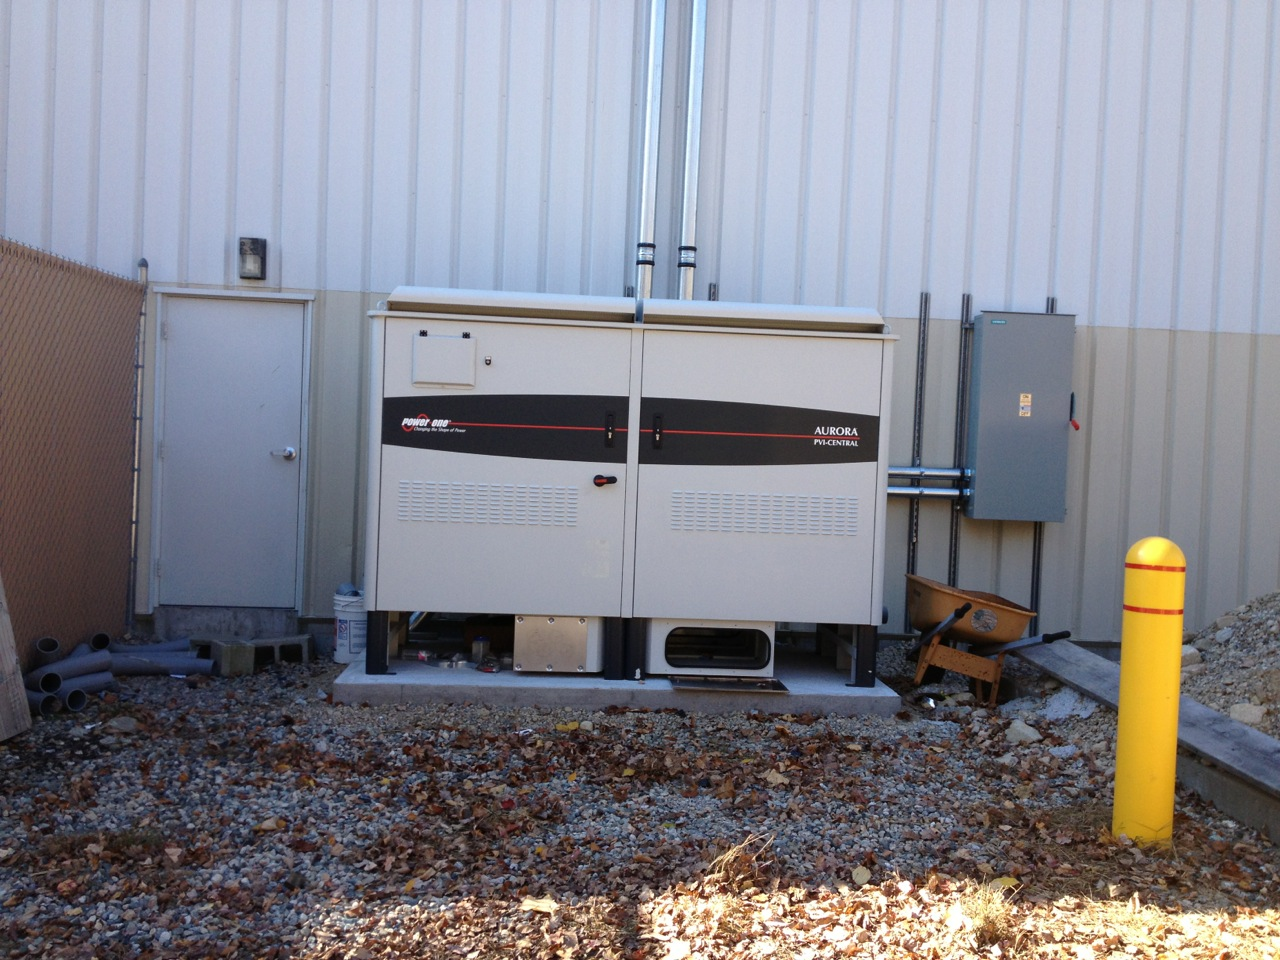 This solar energy system utilizes a 300kW 480V inverter, designed specifically to avoid upgrades to the grid